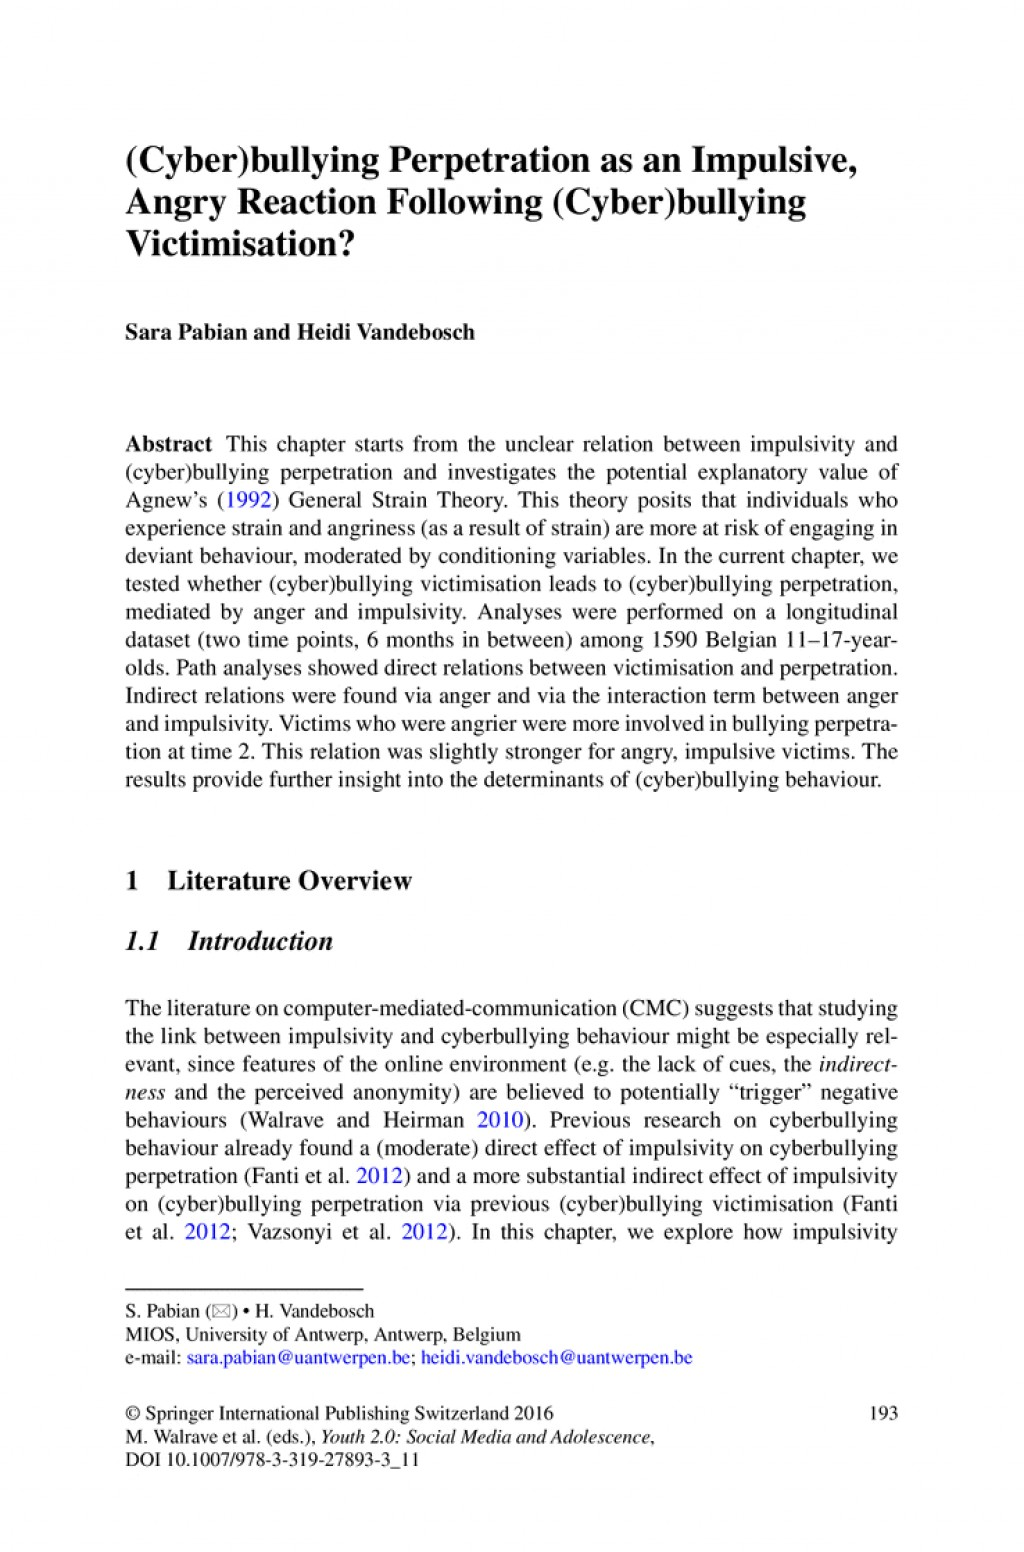 003 Research Paper Bullying Essays Cyberbullying Cover Letter20 Dreaded Conclusion Large